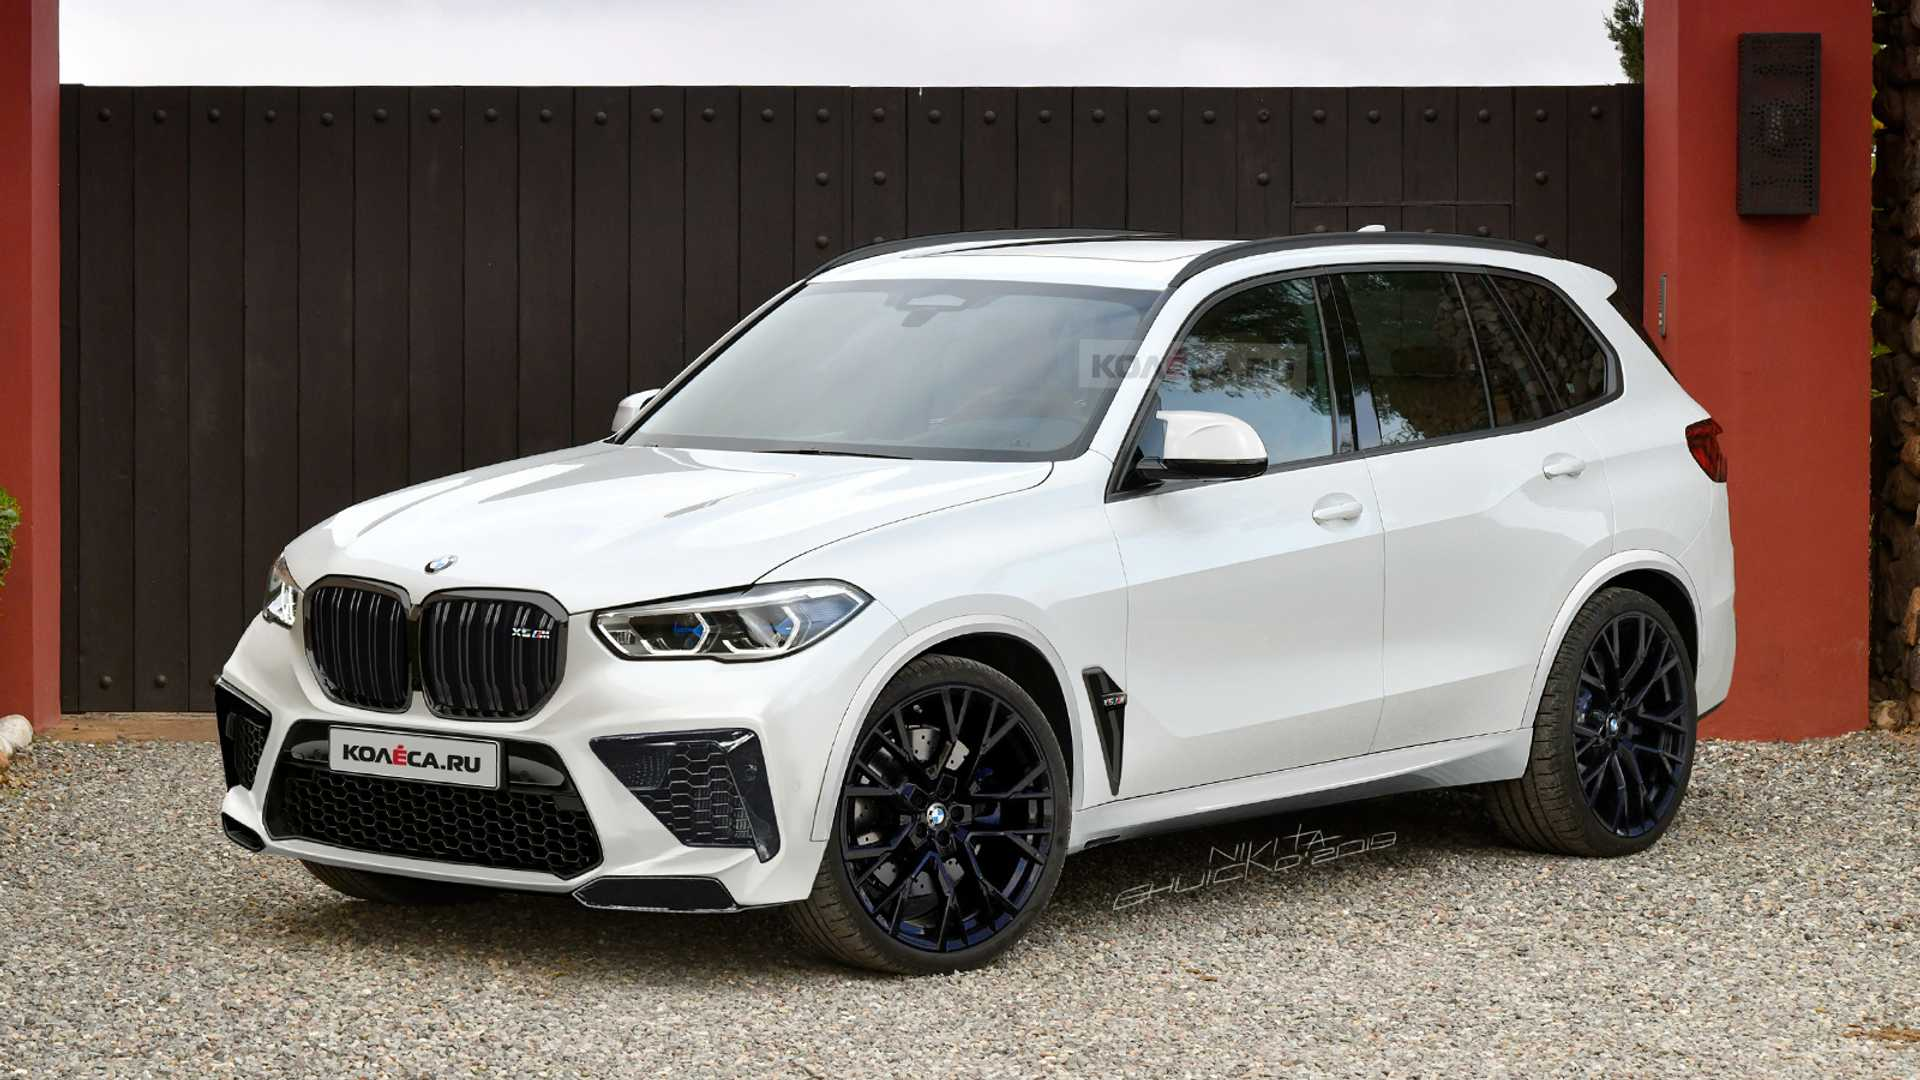 32 All New 2020 BMW X5 Specs And Review